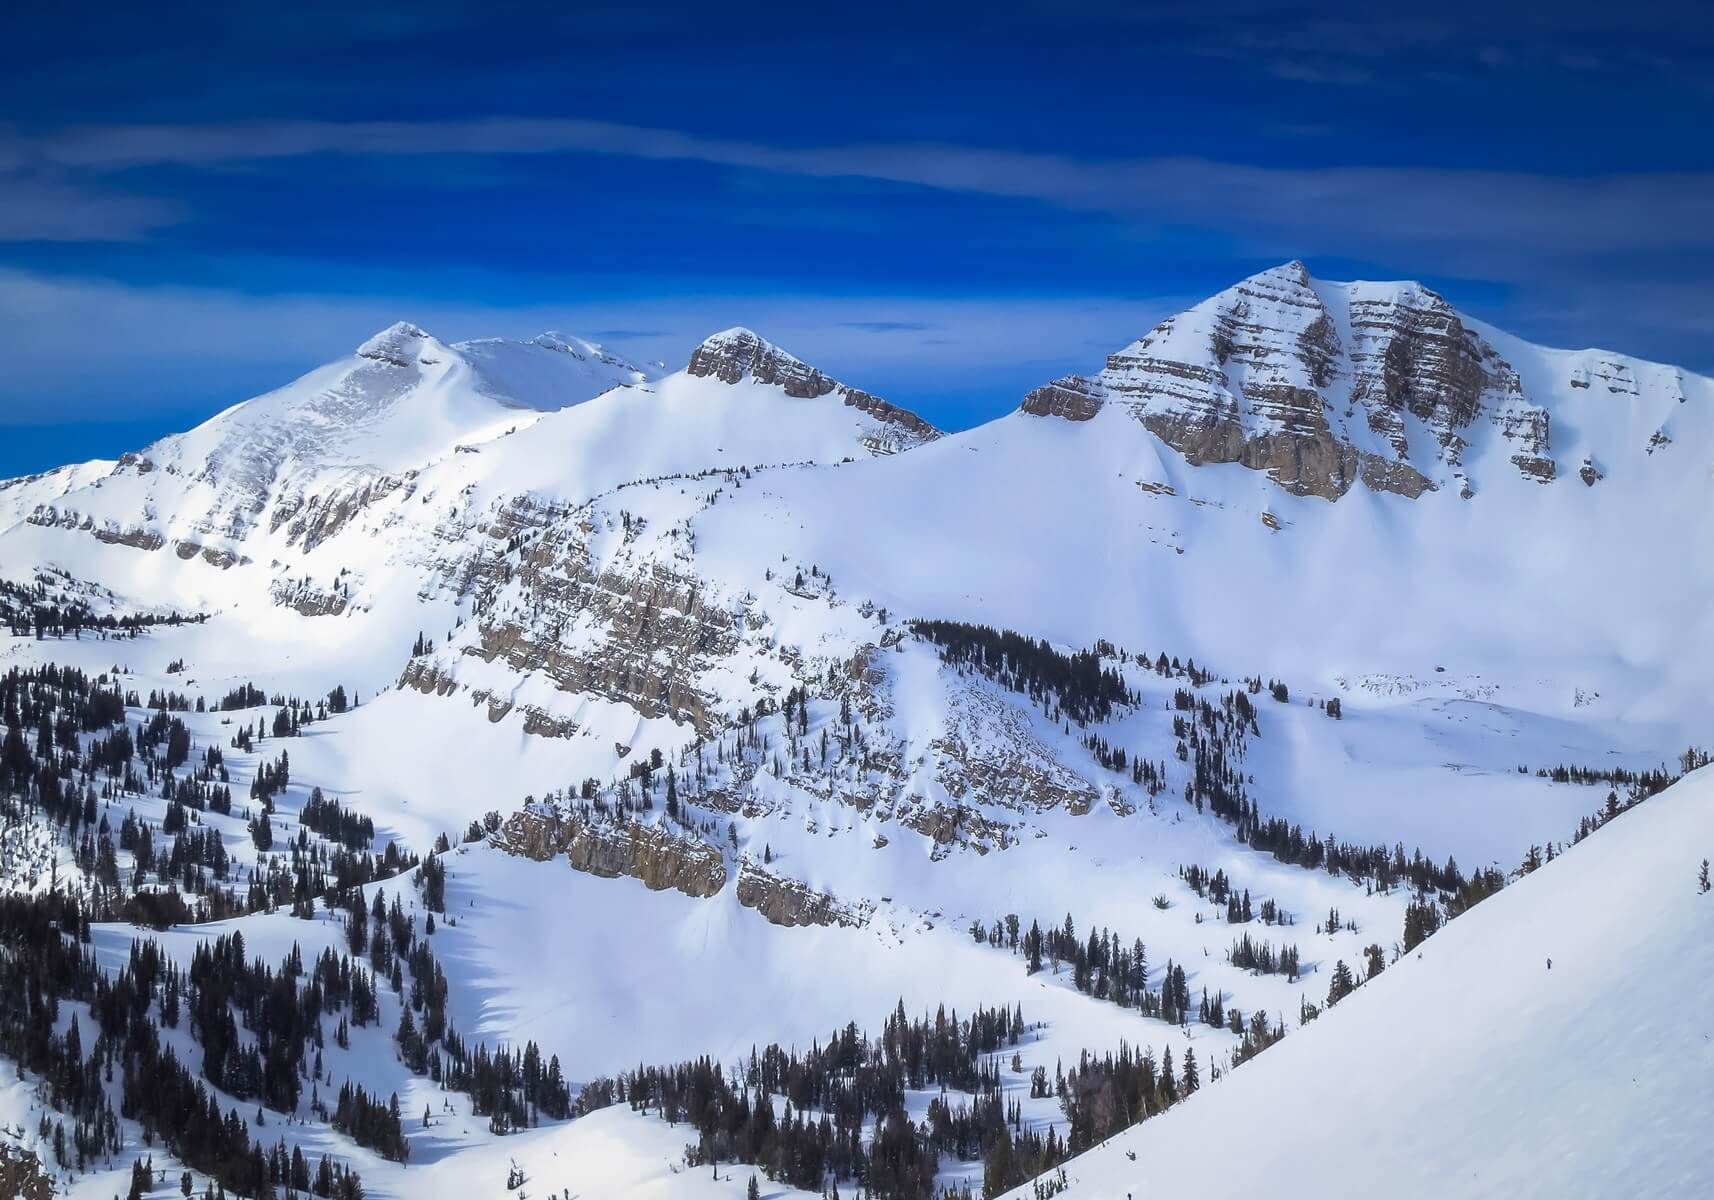 View of the Tetons from Jackson Hole Ski Resort